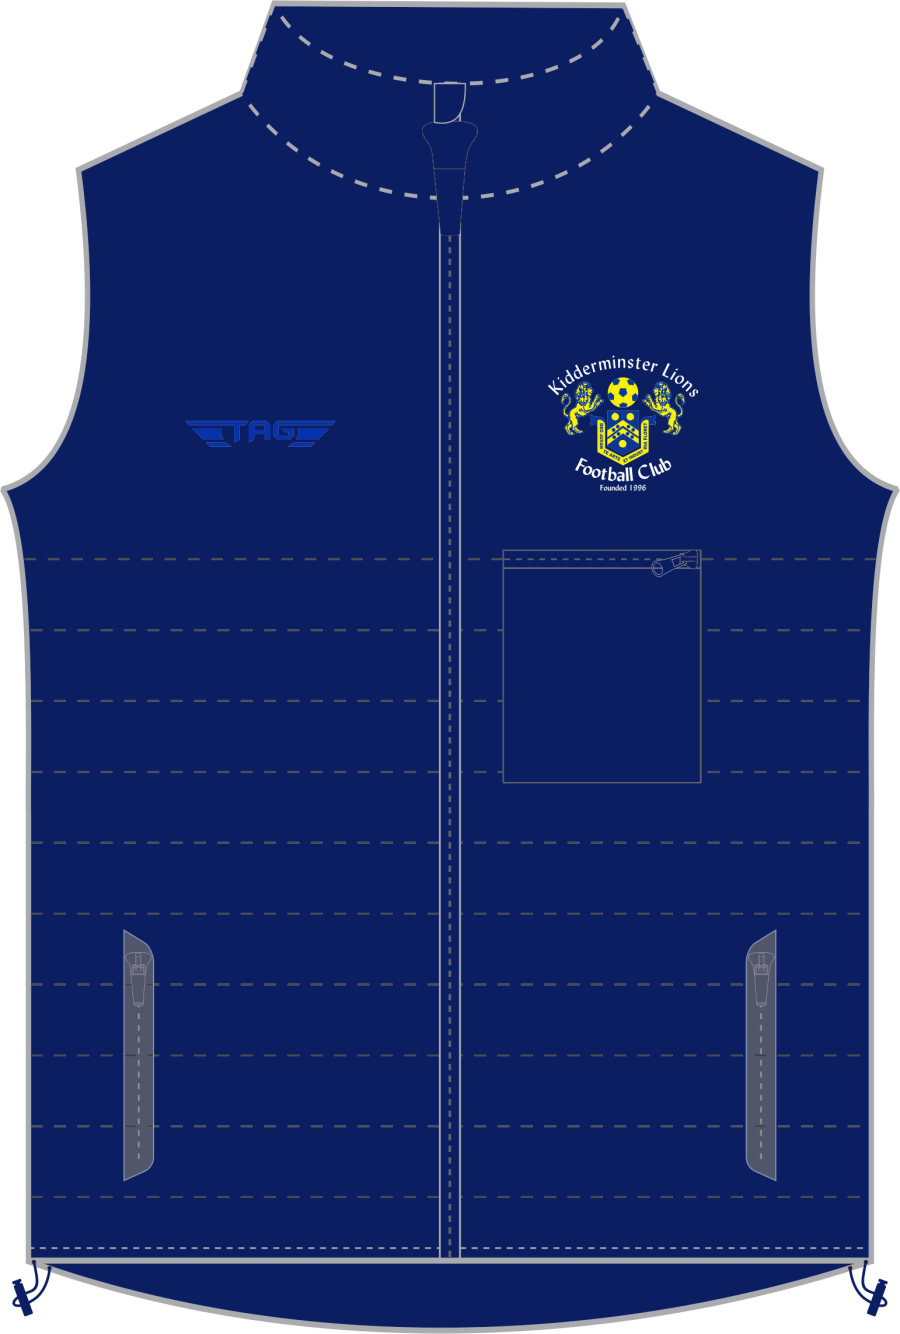 D5P. Kidderminster Lions Deluxe Puffa Gilet - Adult